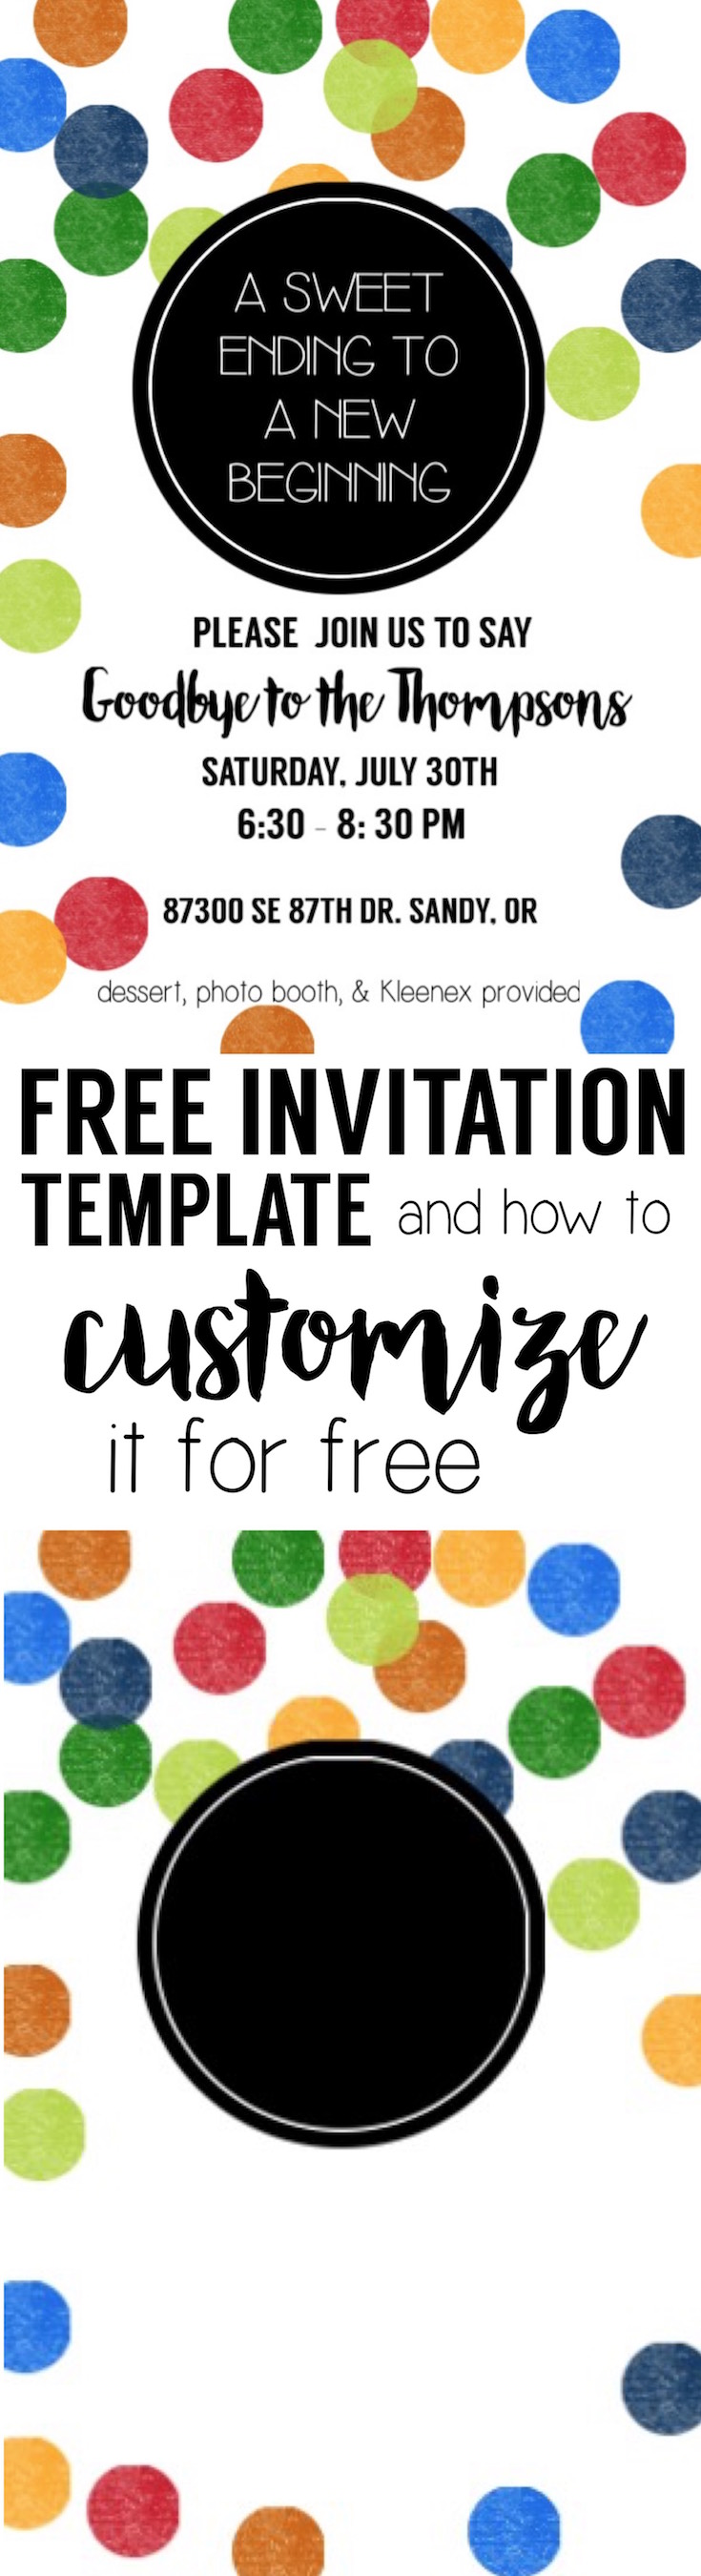 party invitation software